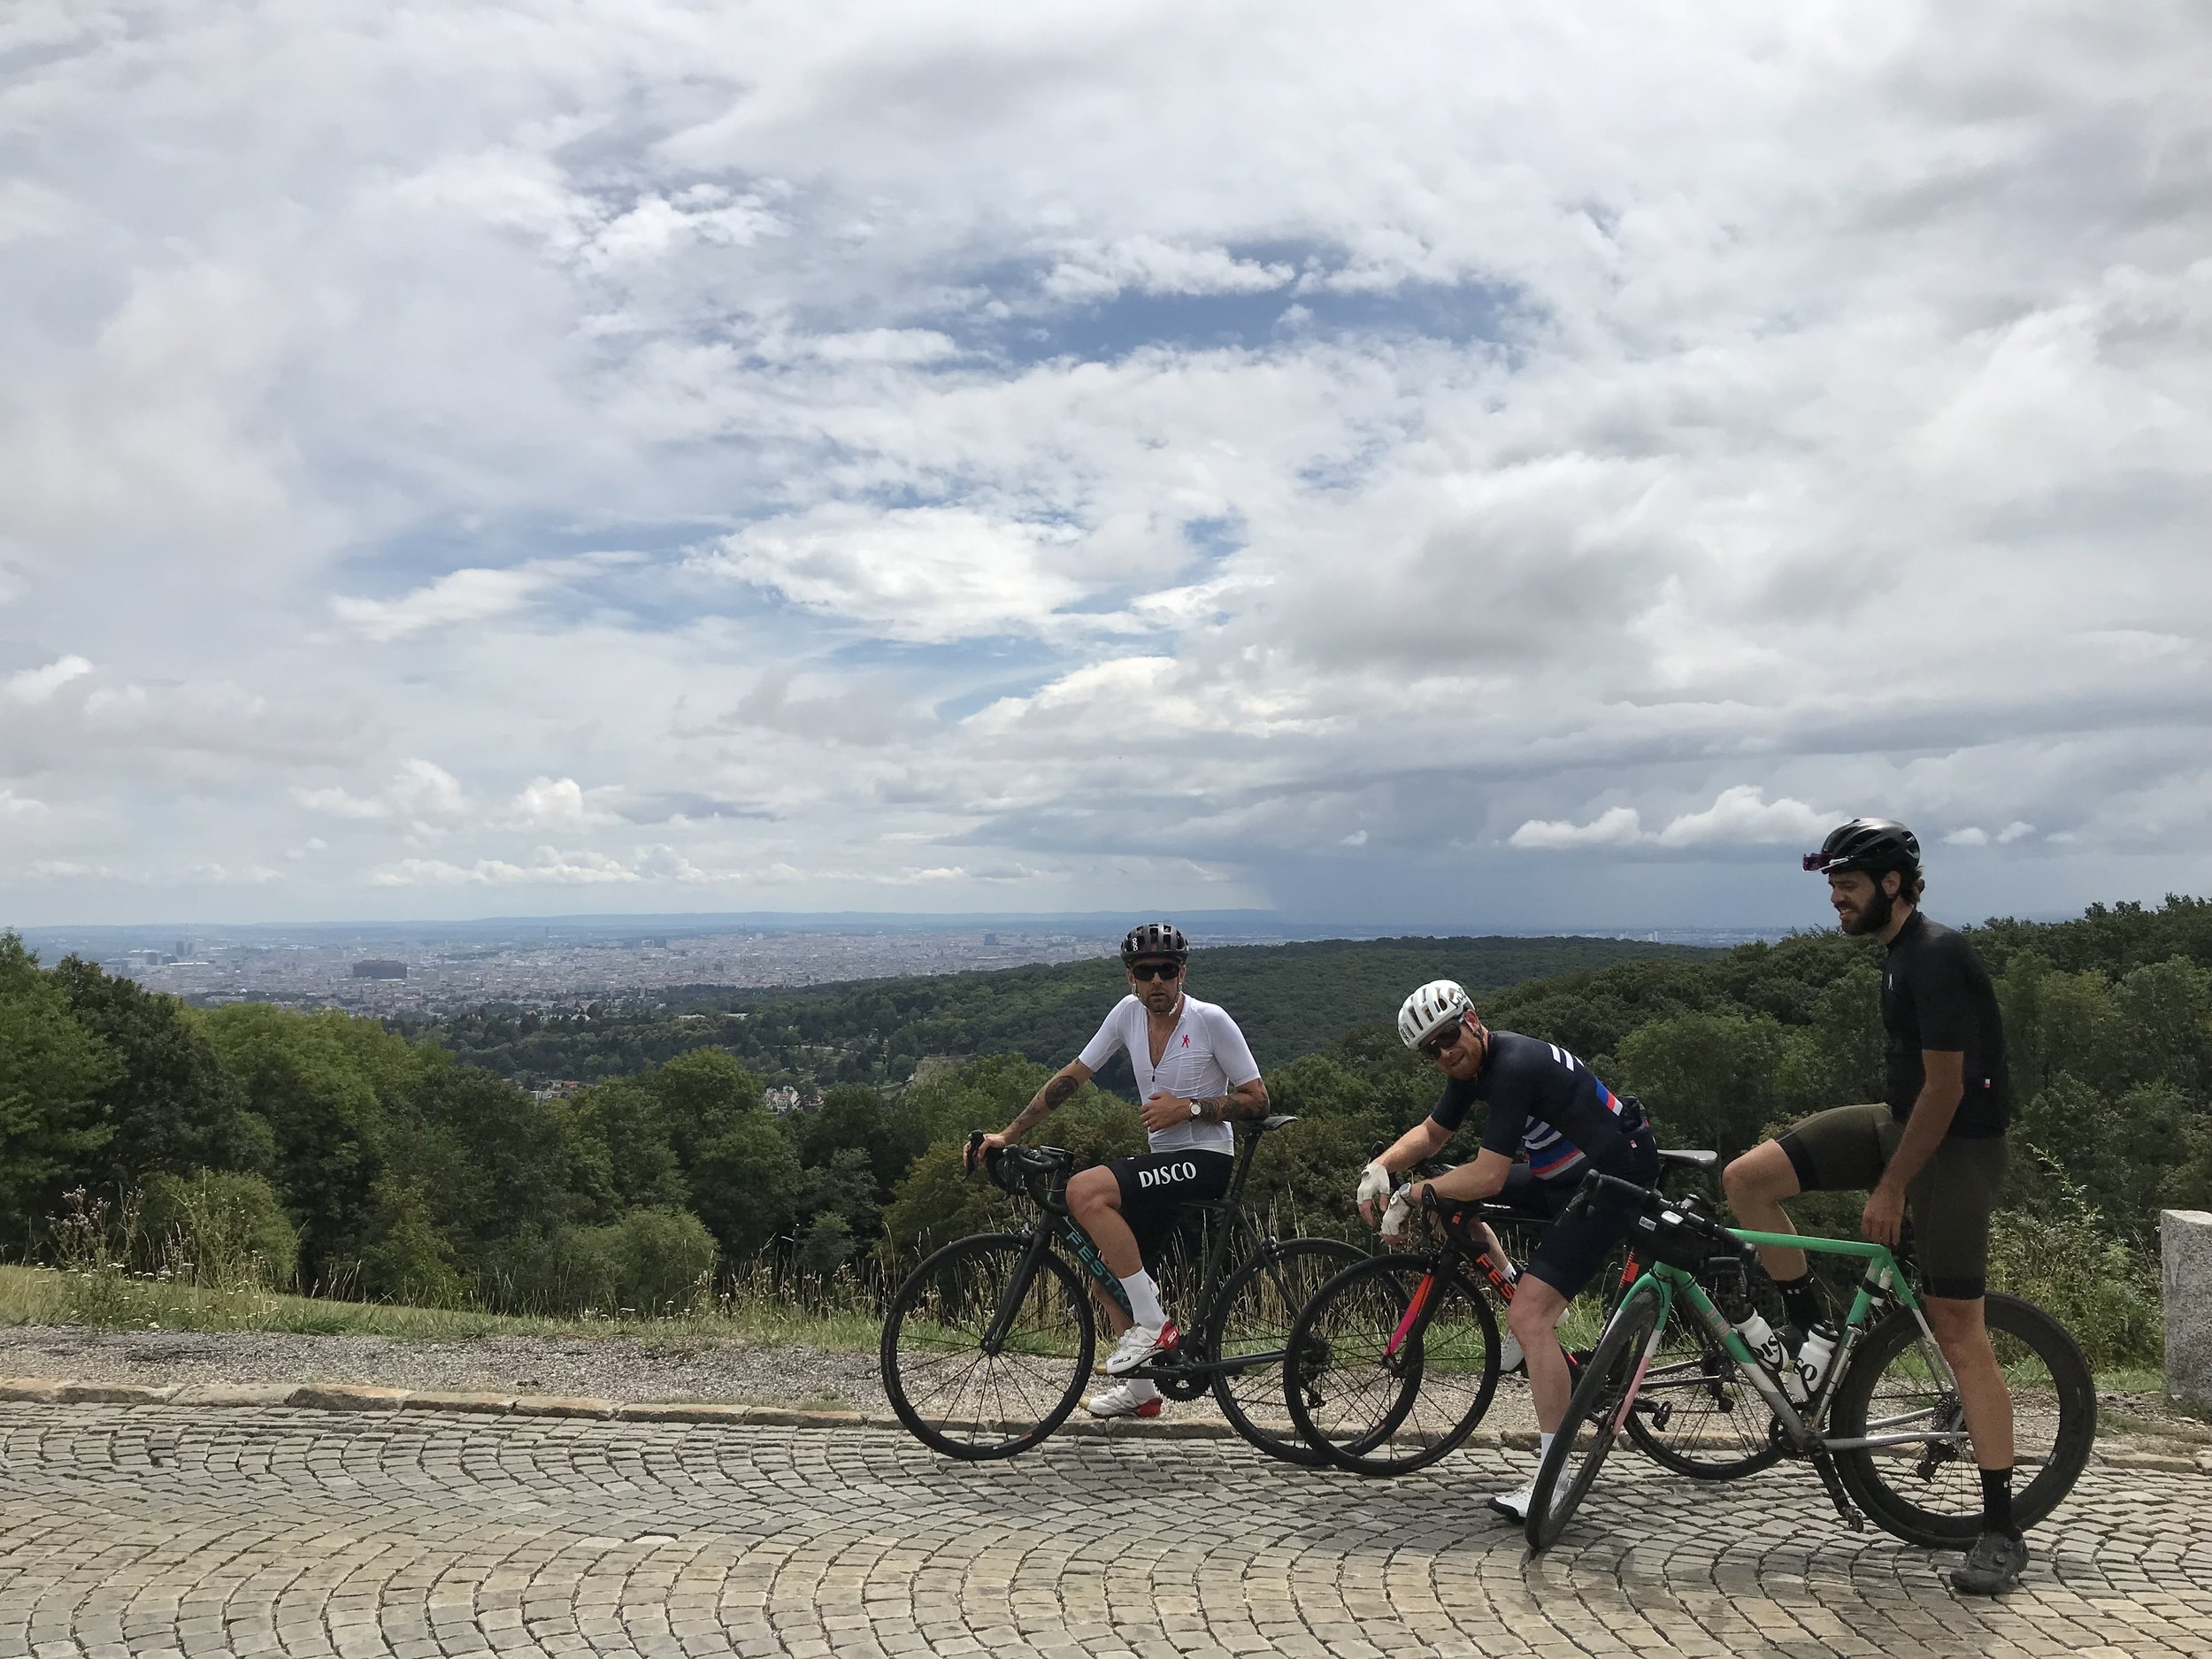 Stunning views of Vienna await those who make it to the top of the climbs in the Vienna Woods